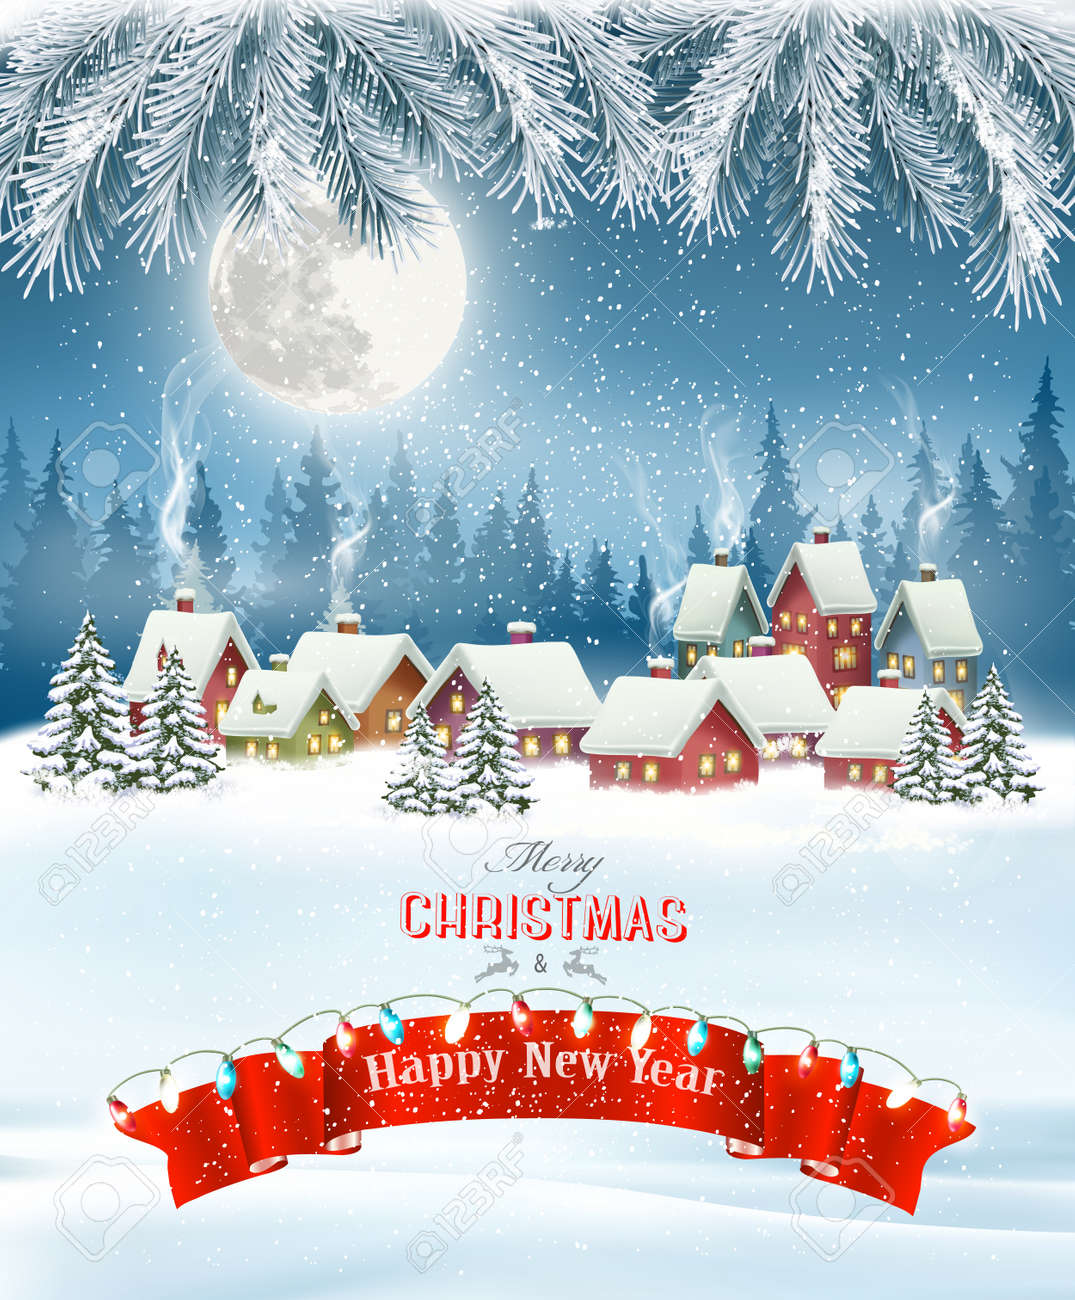 Merry Christmas Background with branches of tree and winter village.Vector - 131494972